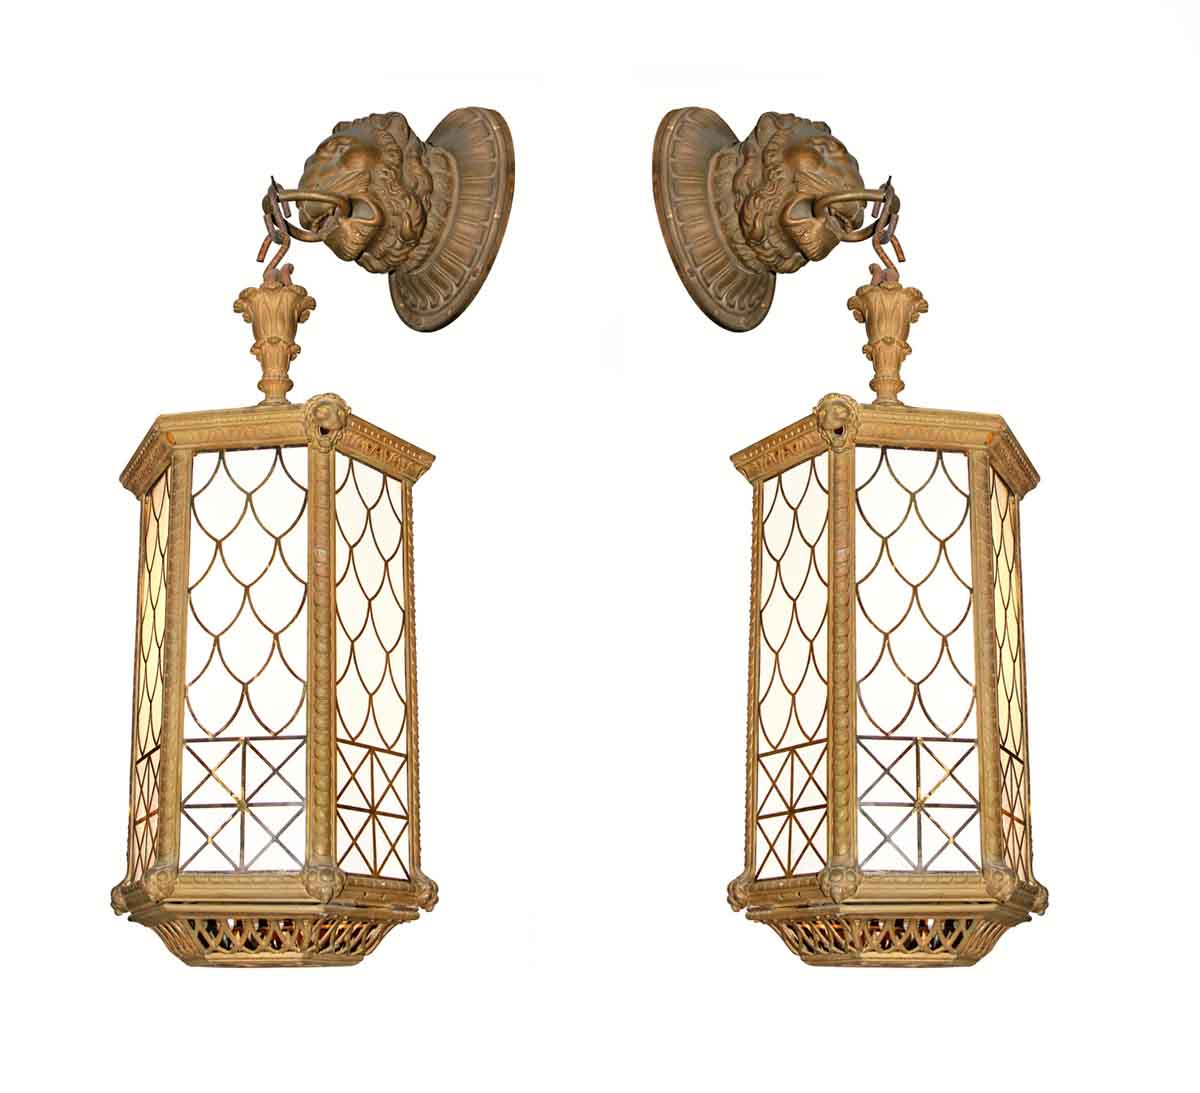 Bronze Lion Lantern Sconces from Blackie's Restaurant